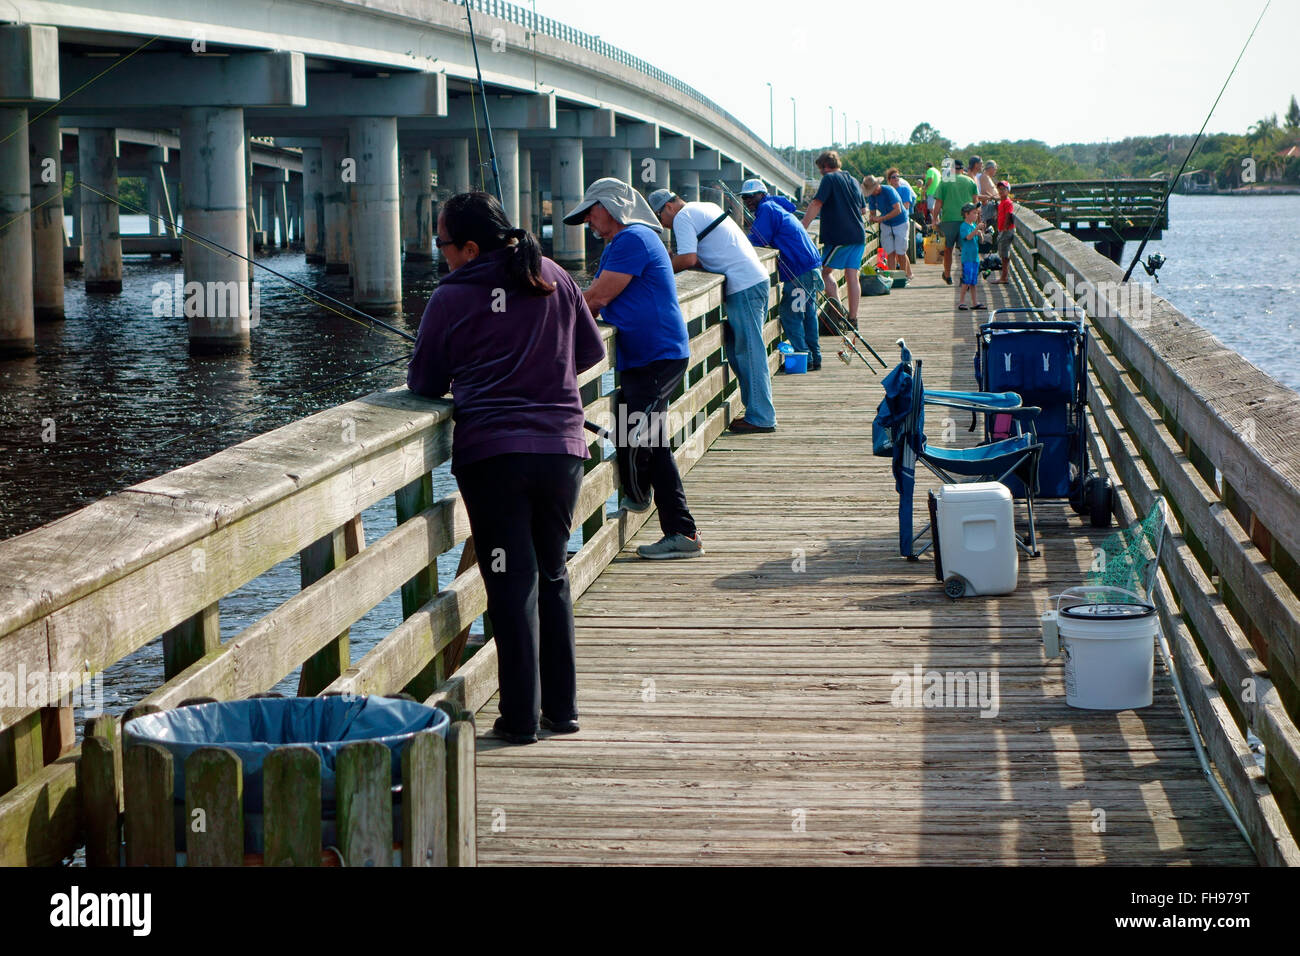 The el jobean fishing pier in port charlotte florida usa for Fishing piers in florida